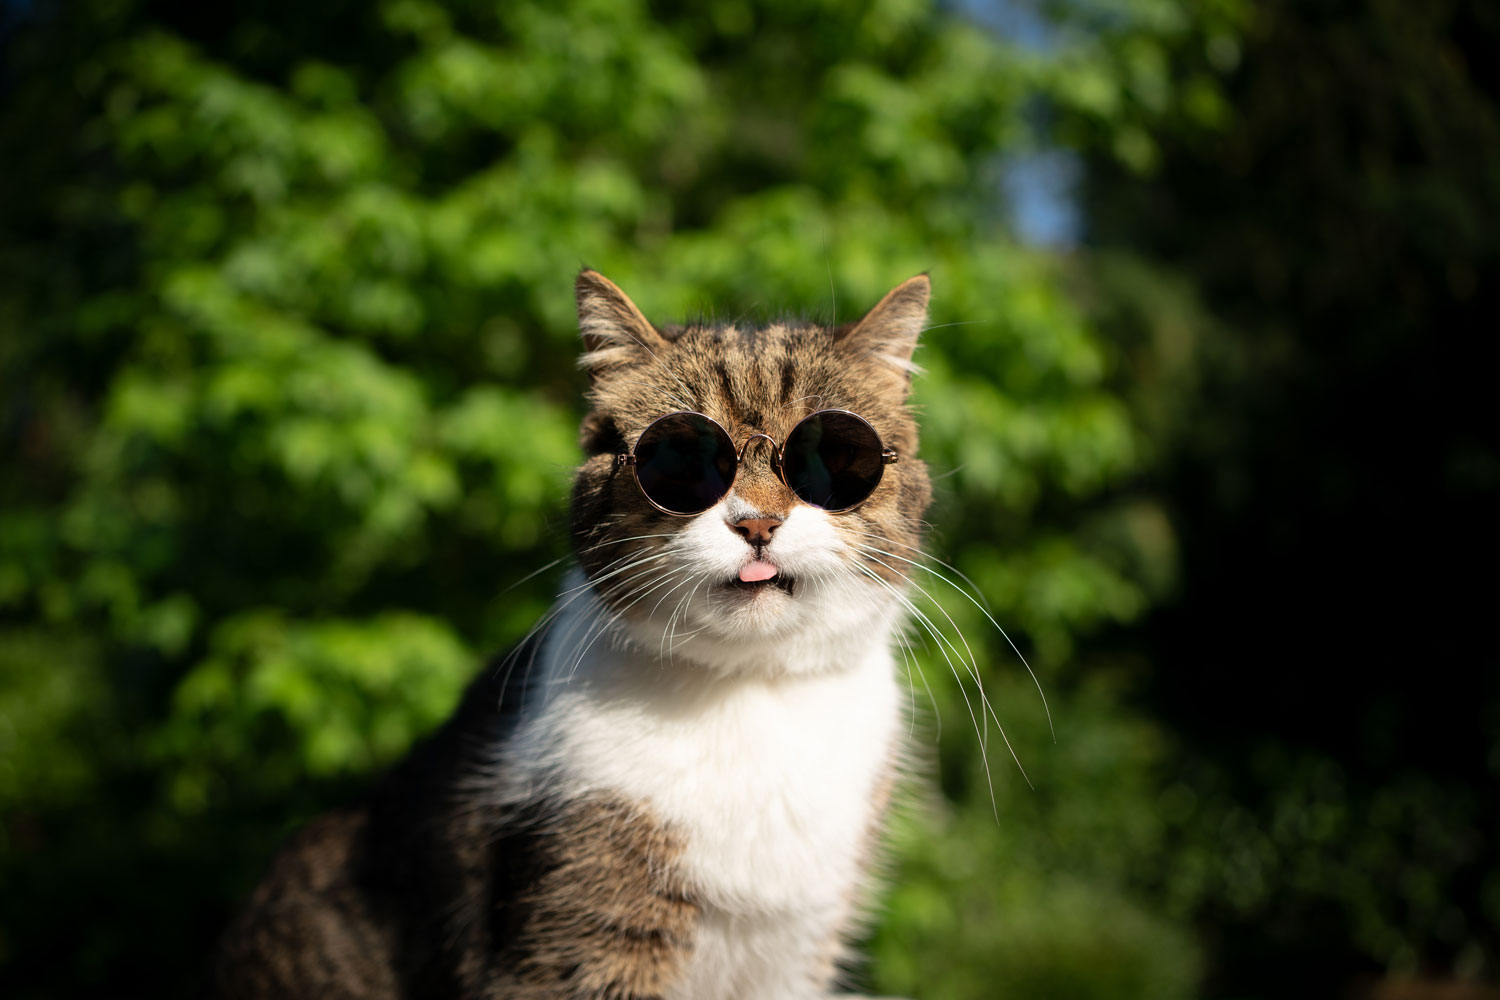 A gorgeous cat wearing round glasses sticking out his tongue